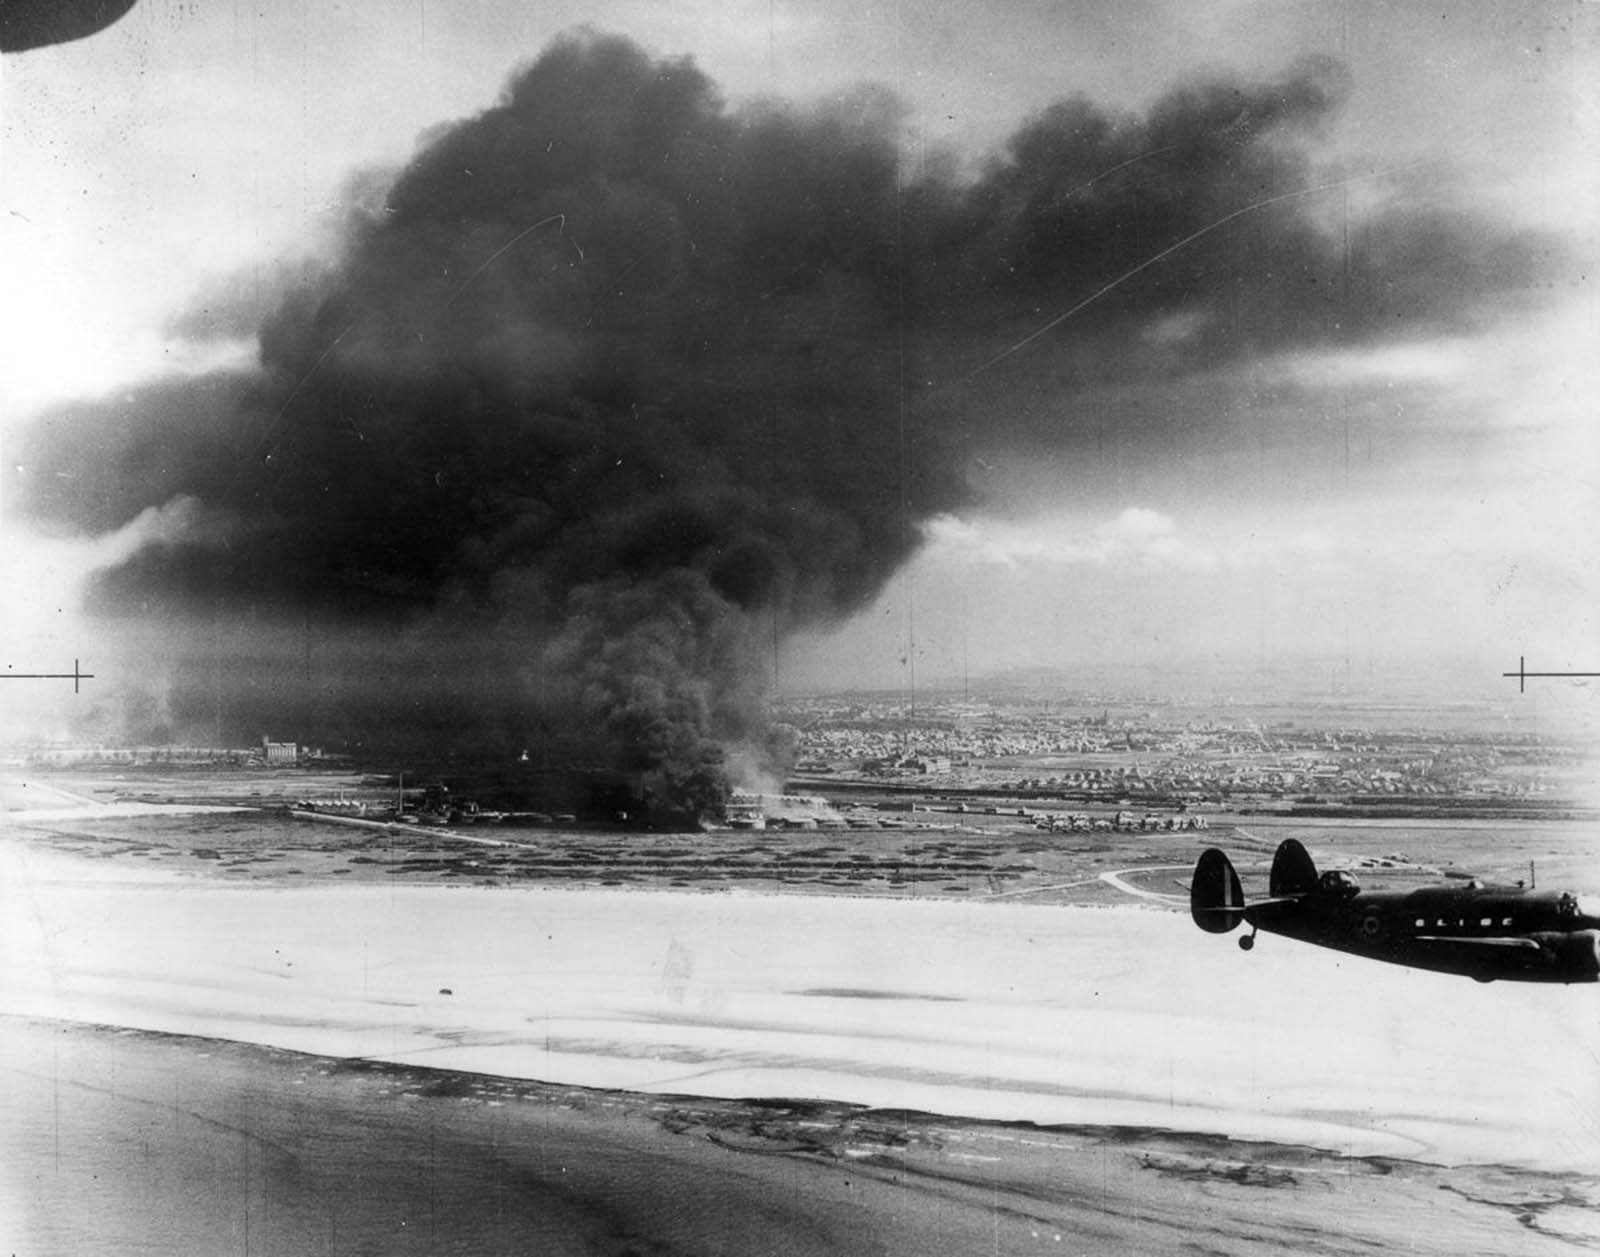 Oil tanks burn on Dunkirk beach.